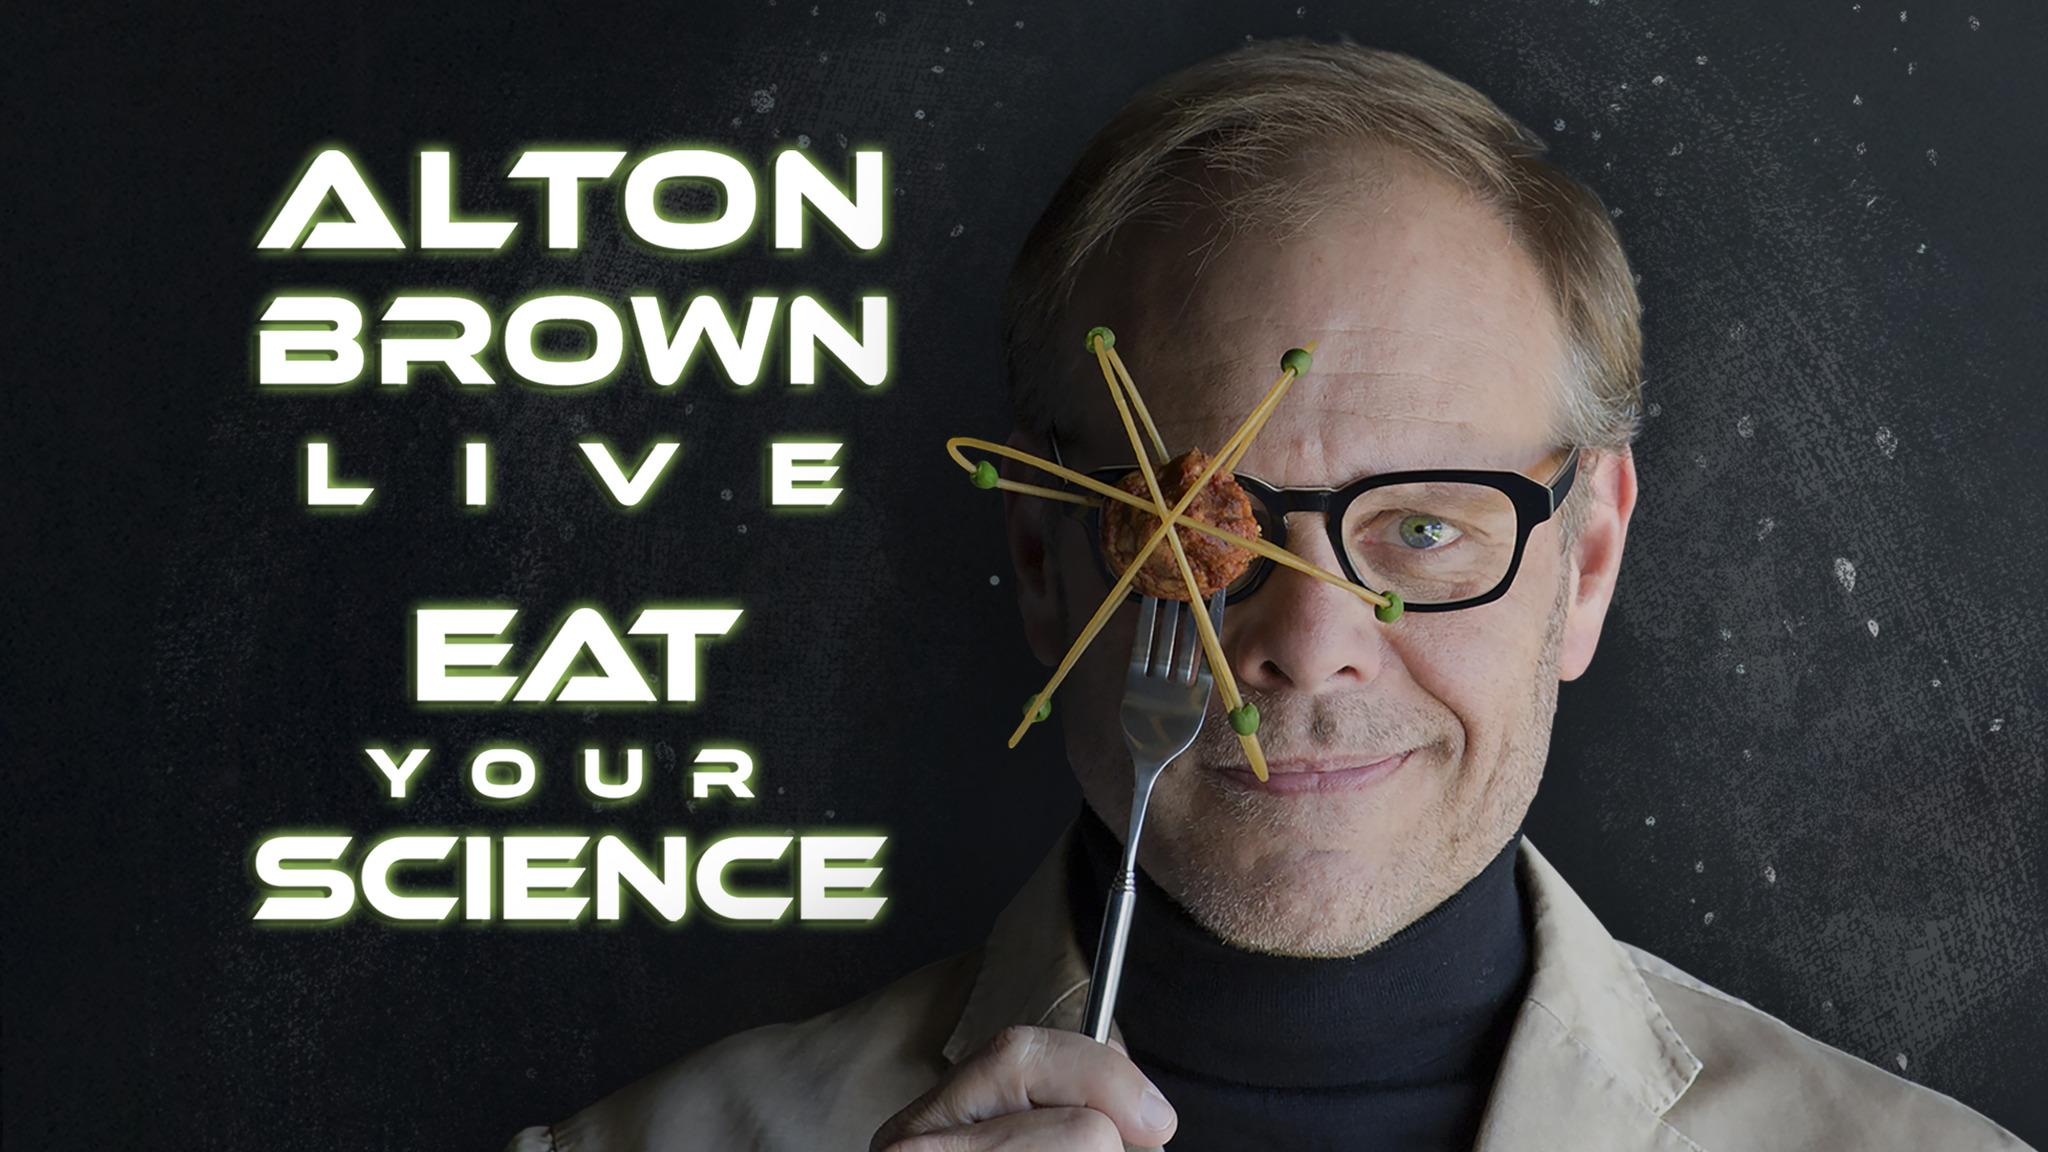 Alton Brown at Coronado Performing Arts Center